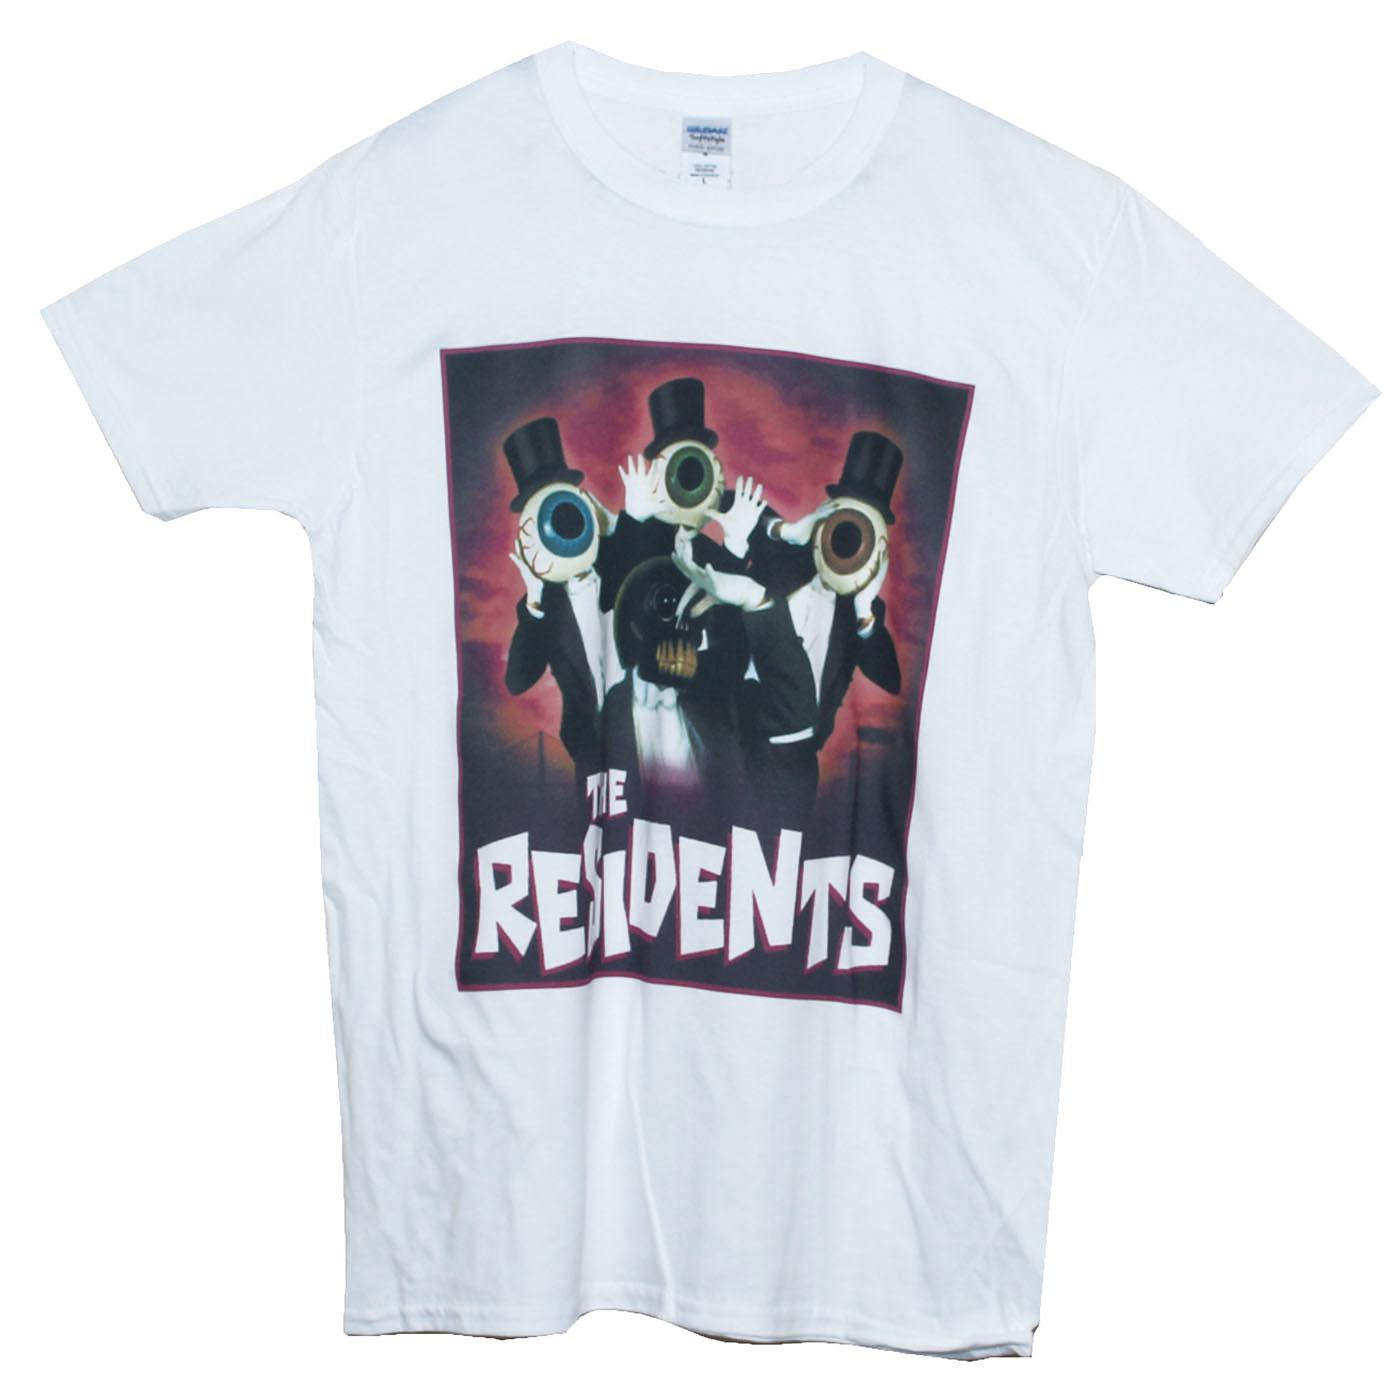 Art Avant Garde The Residents тенниска Noise Punk Rock Graphic Tee Мужчины Женщины